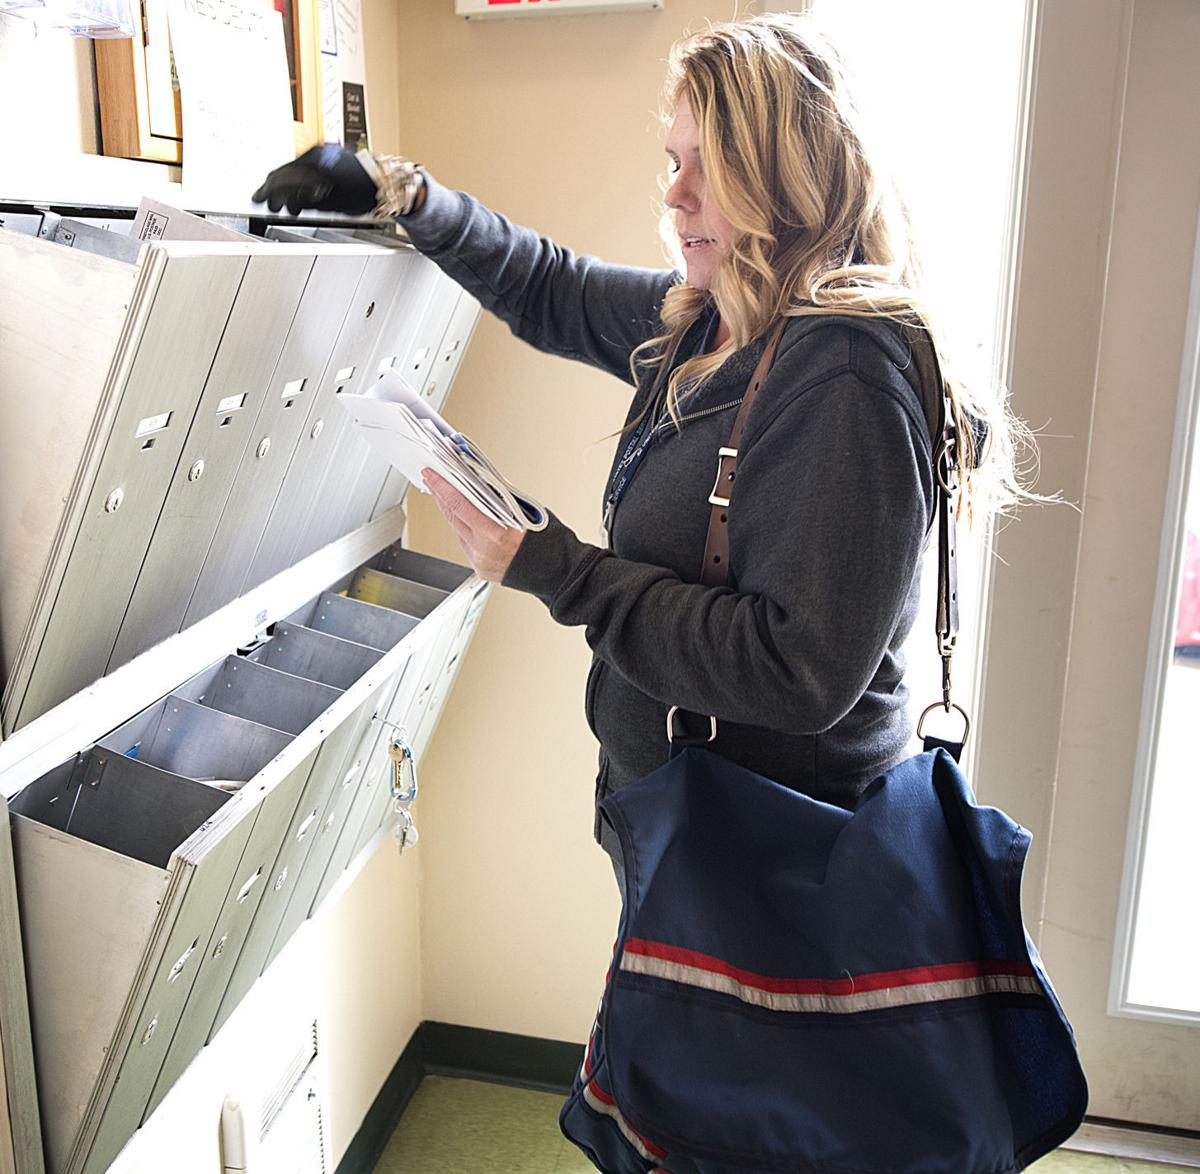 Mail carrier Traci Launsby